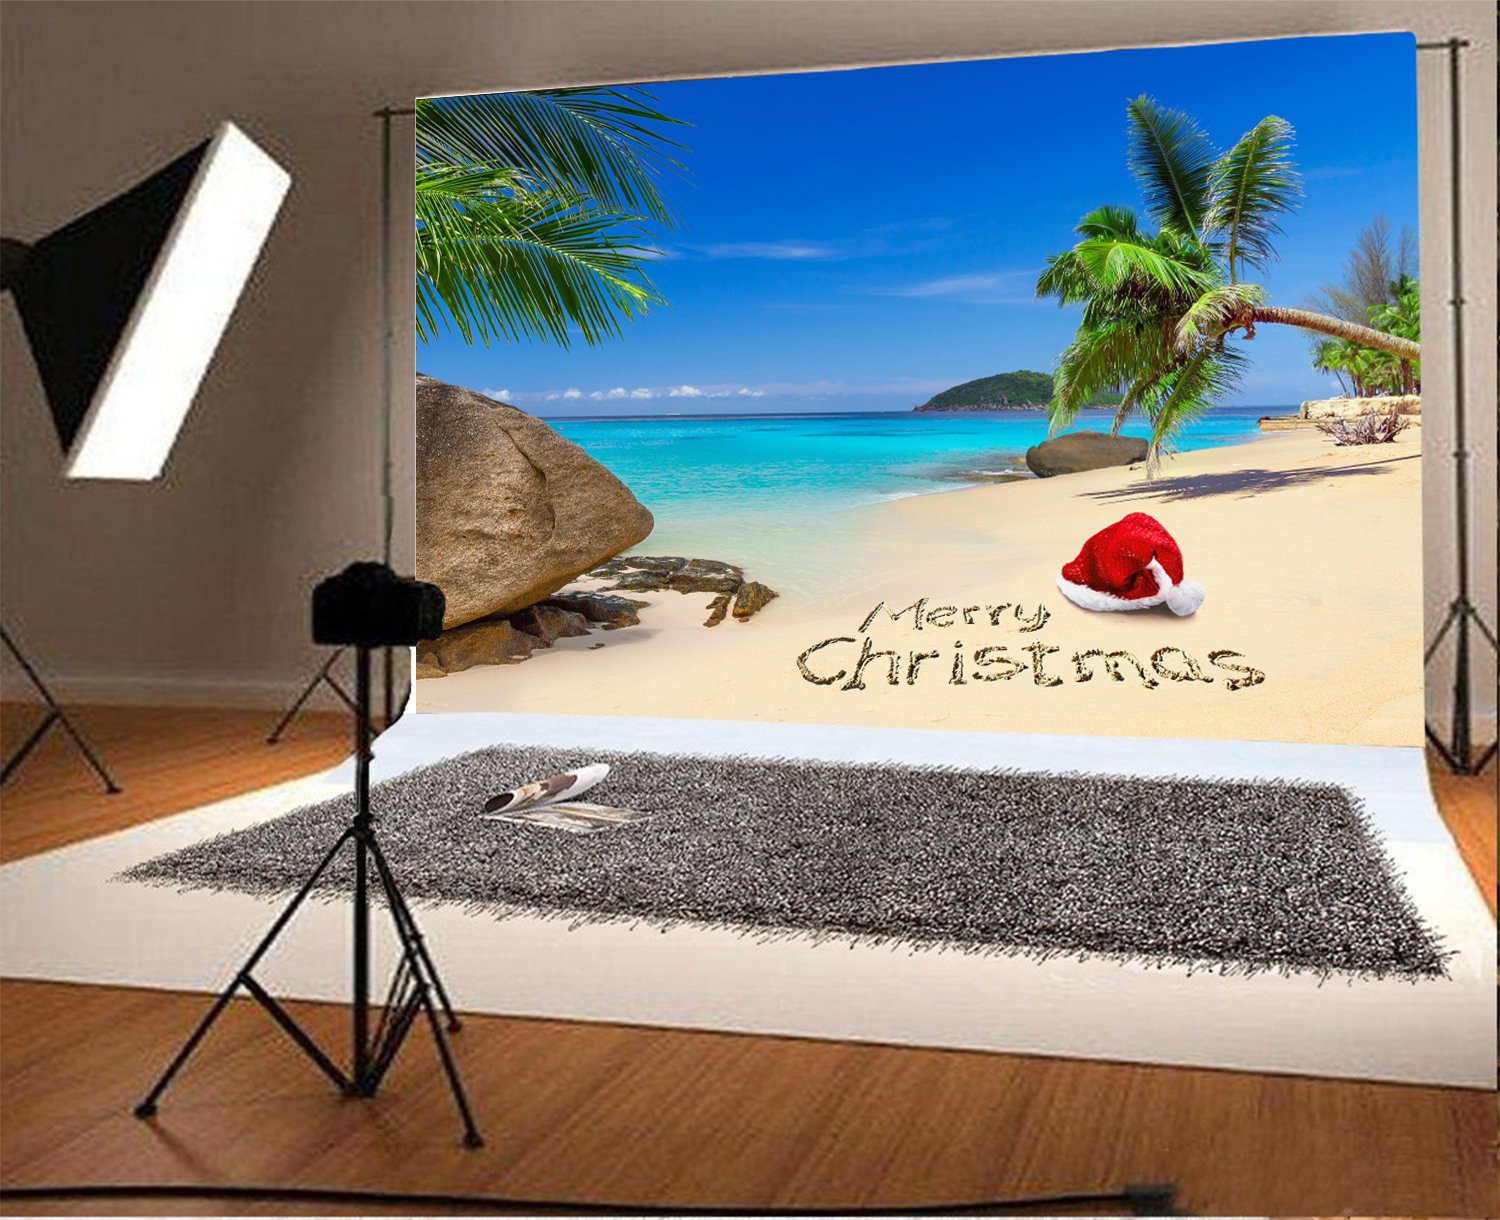 fb6caec8180dd Laeacco 7x5FT Vinyl Backdrop Photography Background Merry Christmas Santa  Hat Tropical Beach Rock Palm Trees Island Blue Sea and Sky Scenery  Background ...